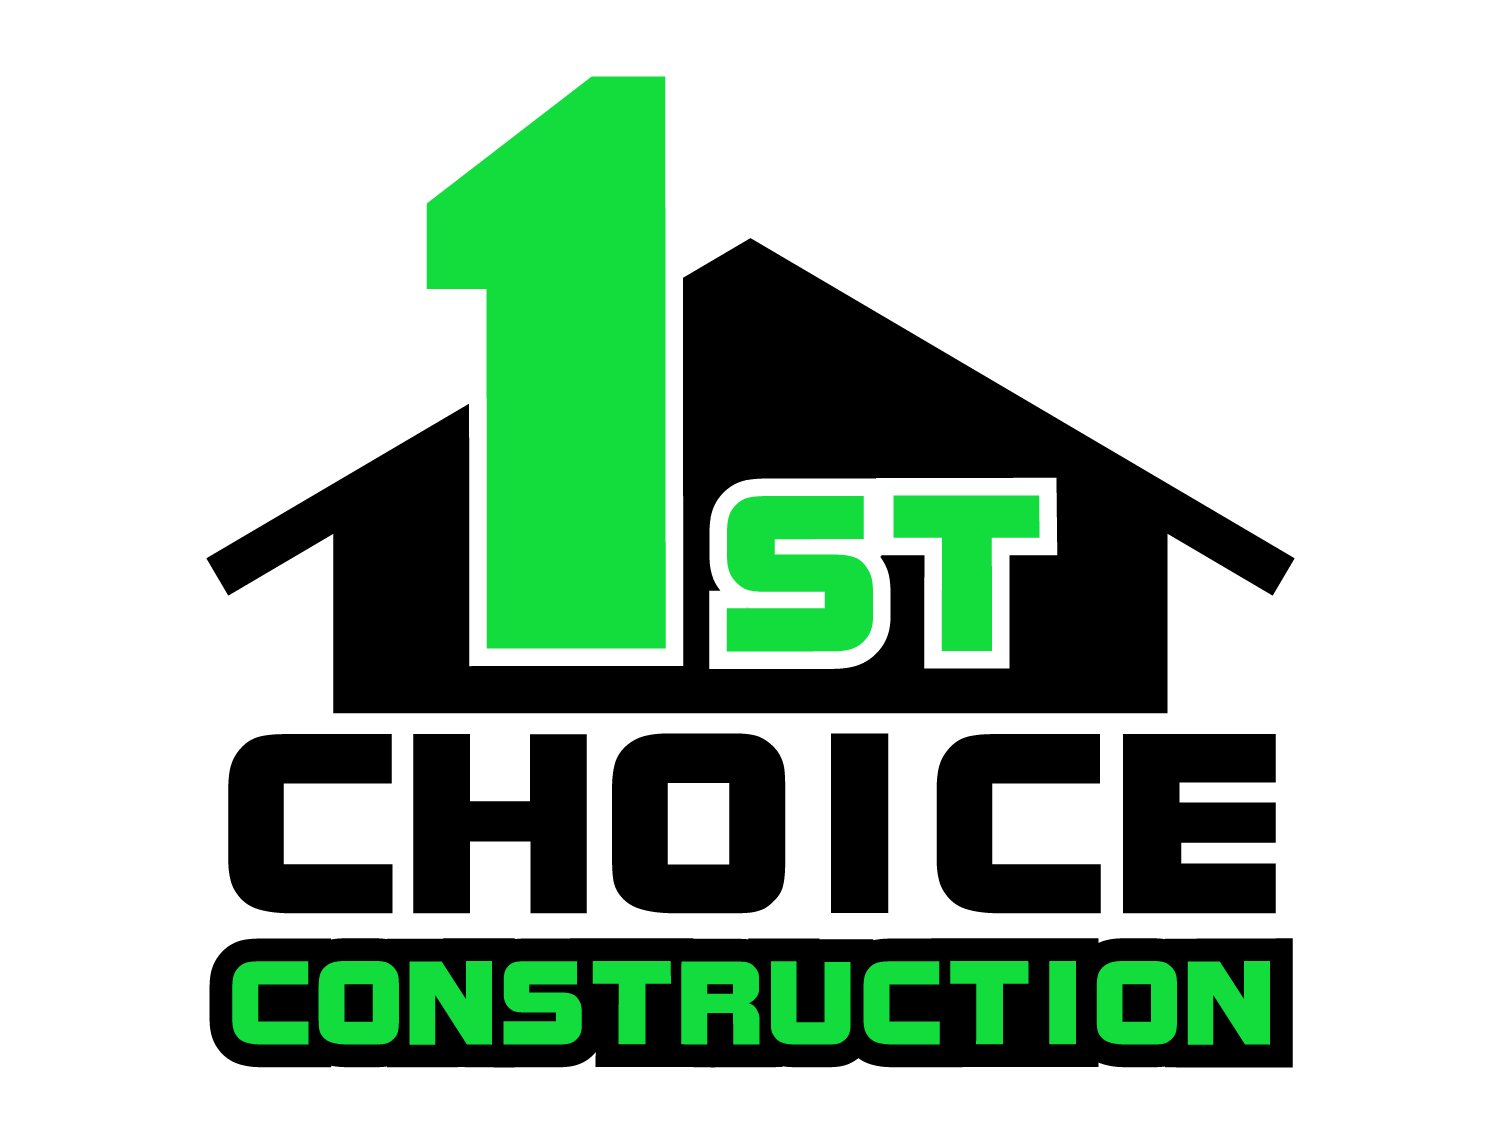 First Choice Construction